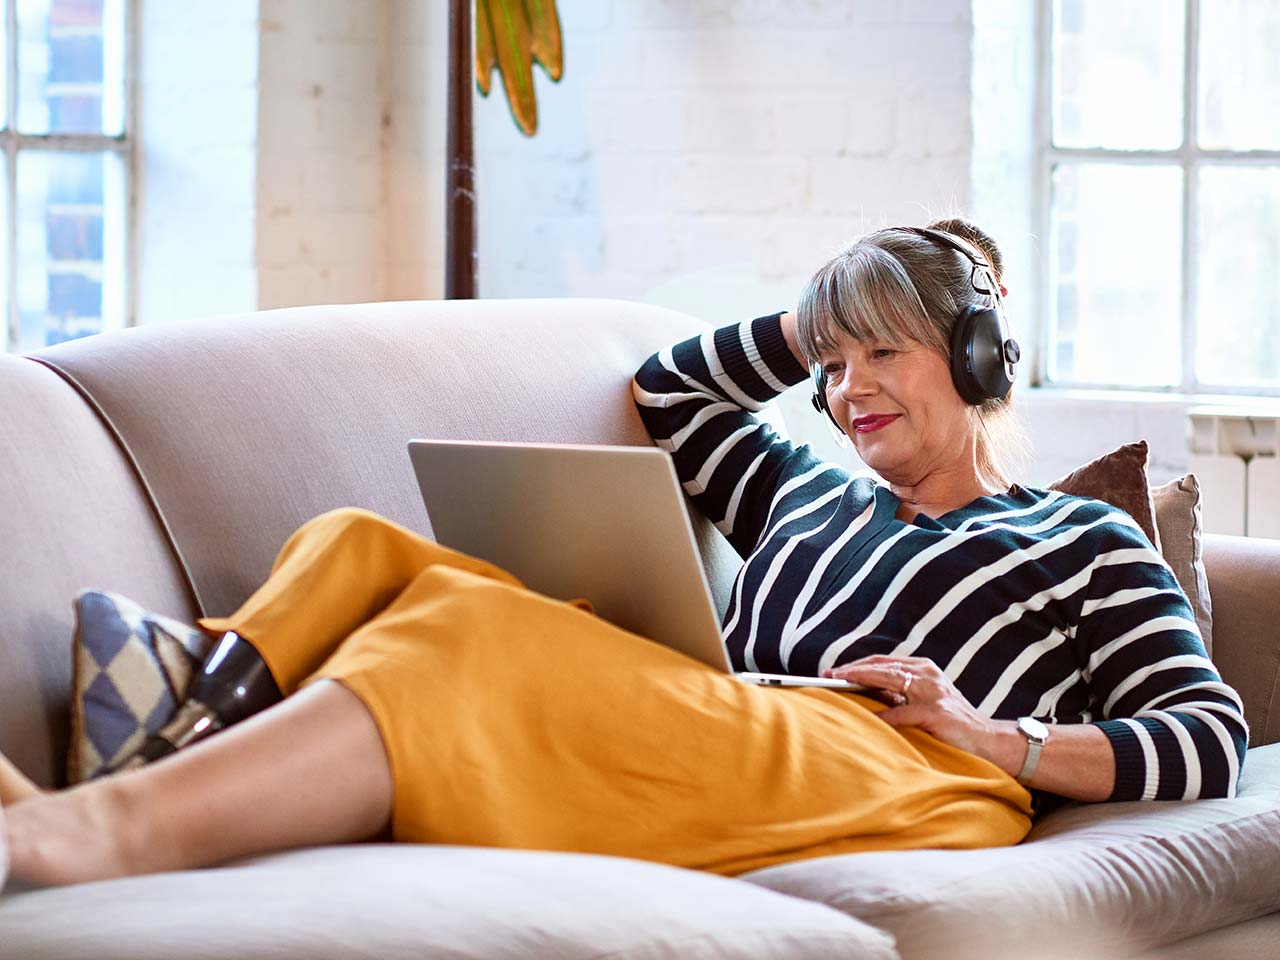 Woman on couch with headset reading a laptop.